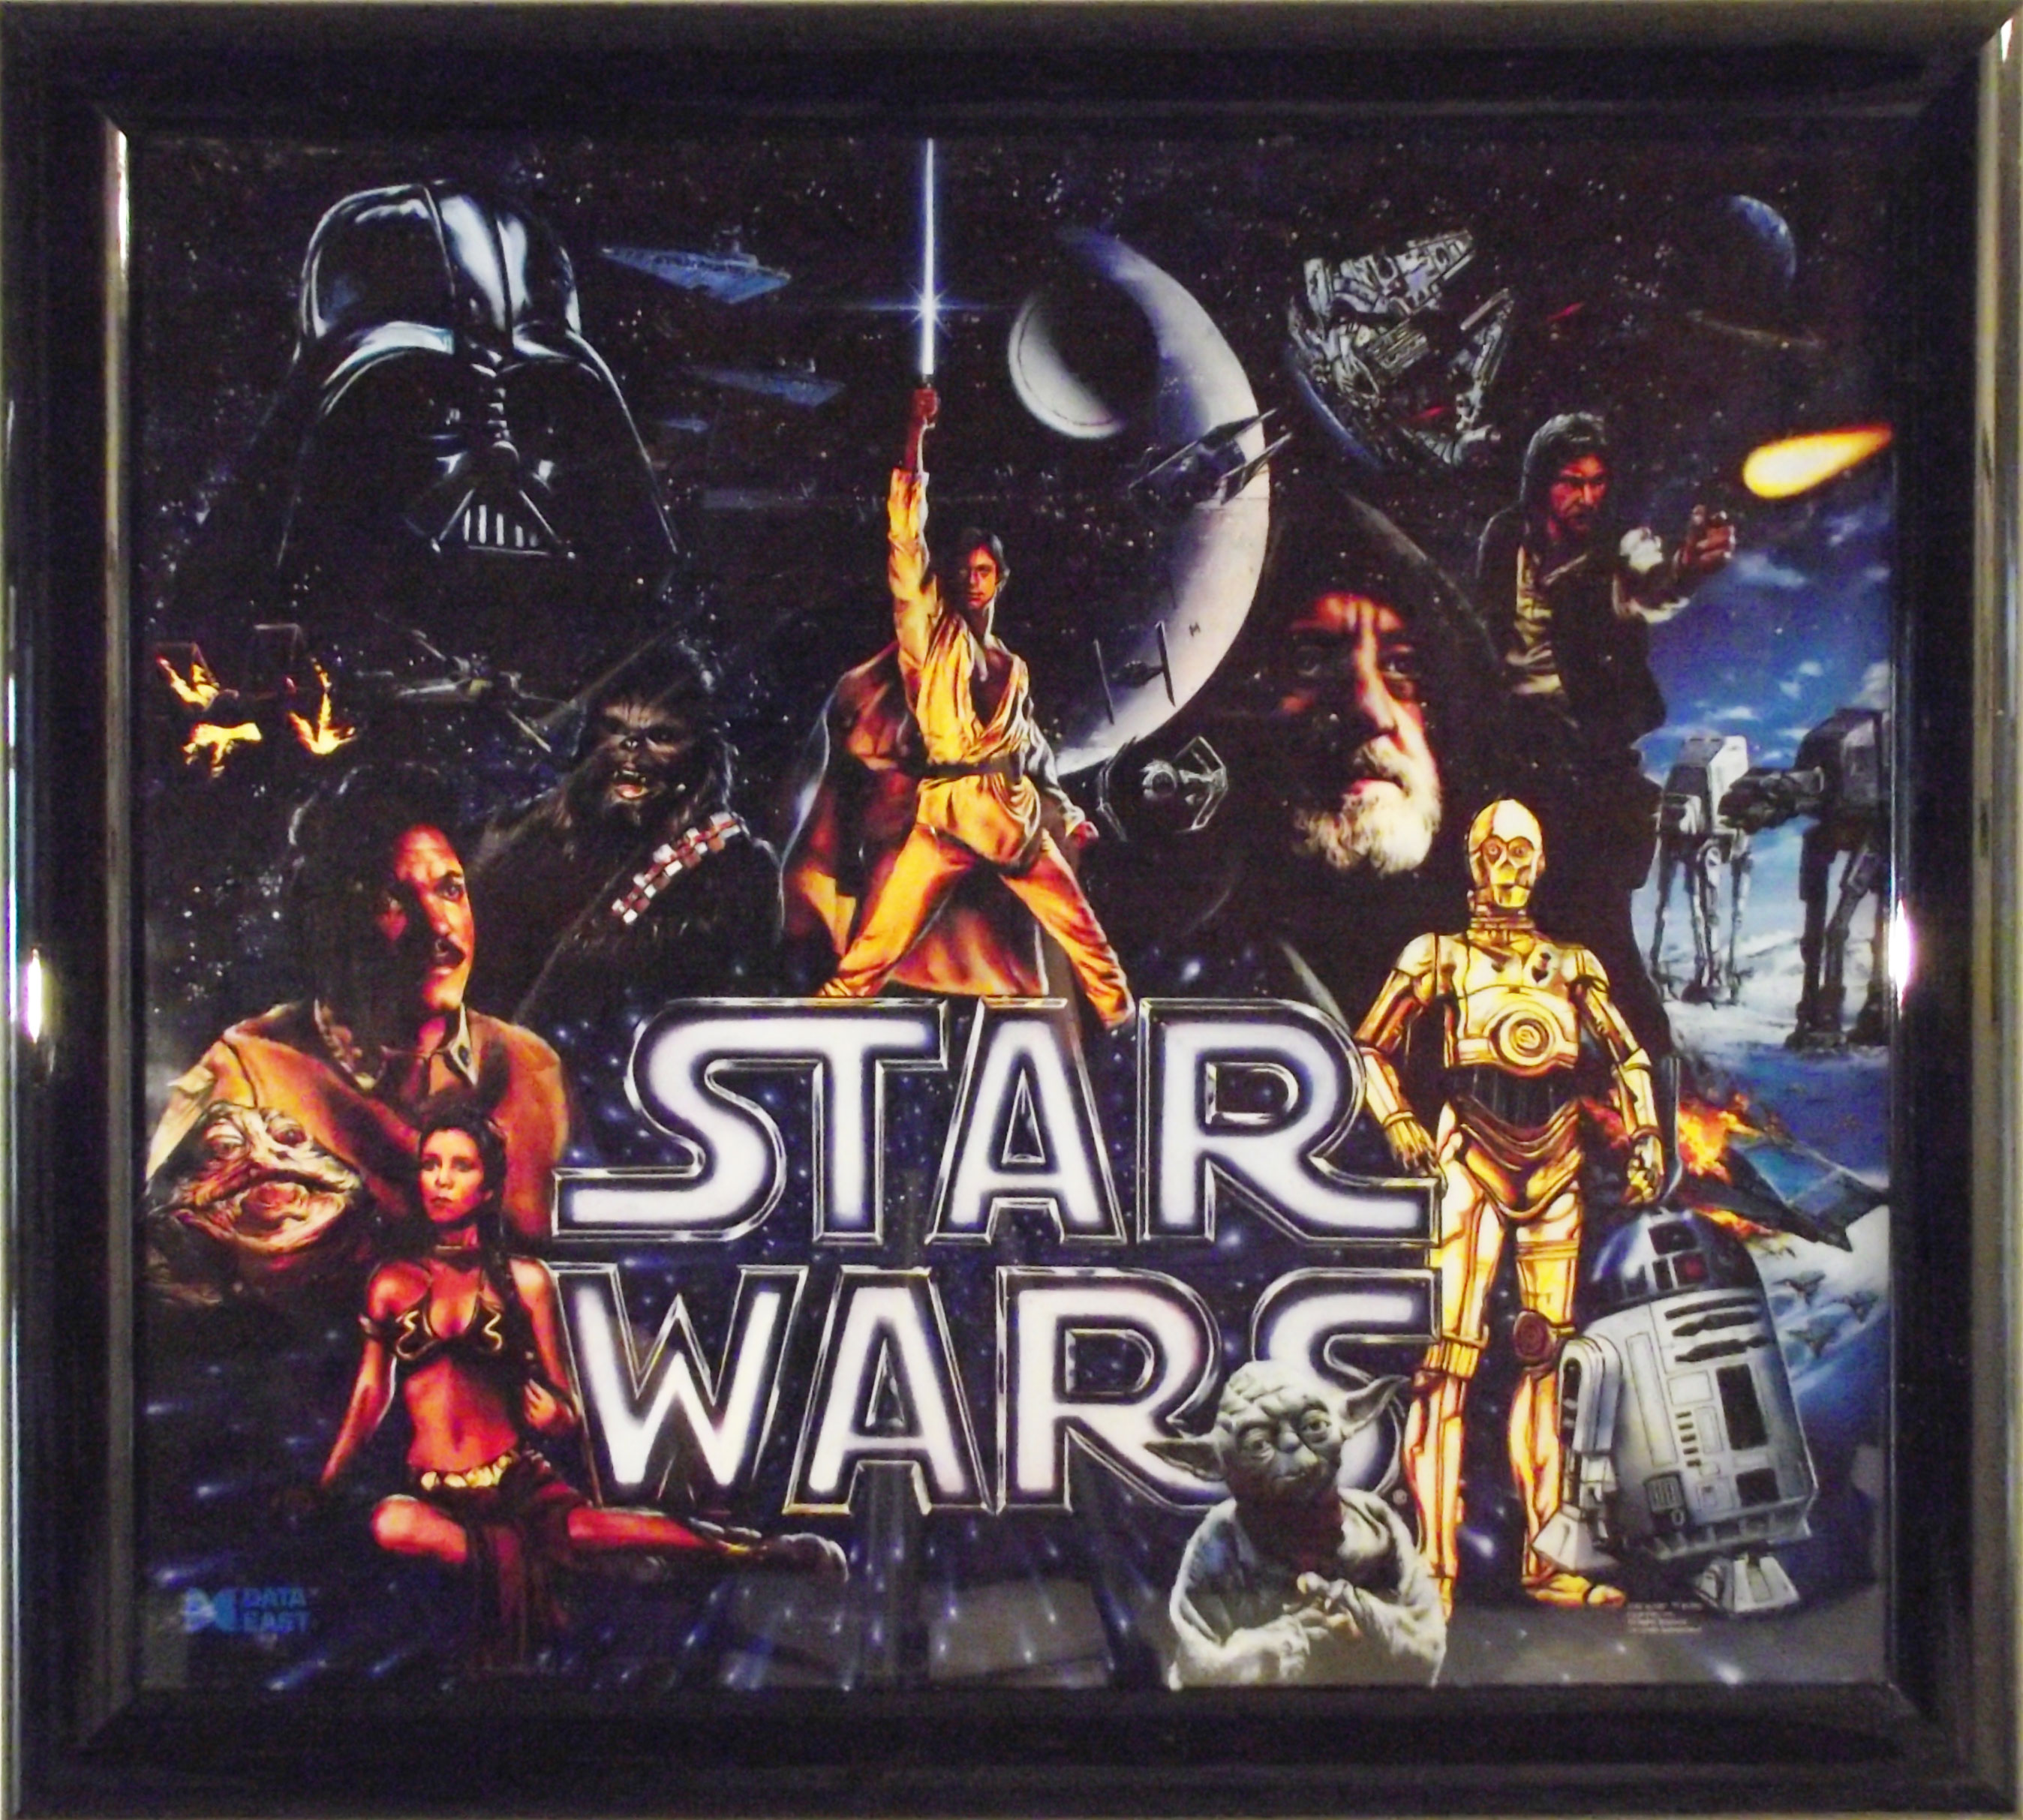 Star Wars pinball backglass art